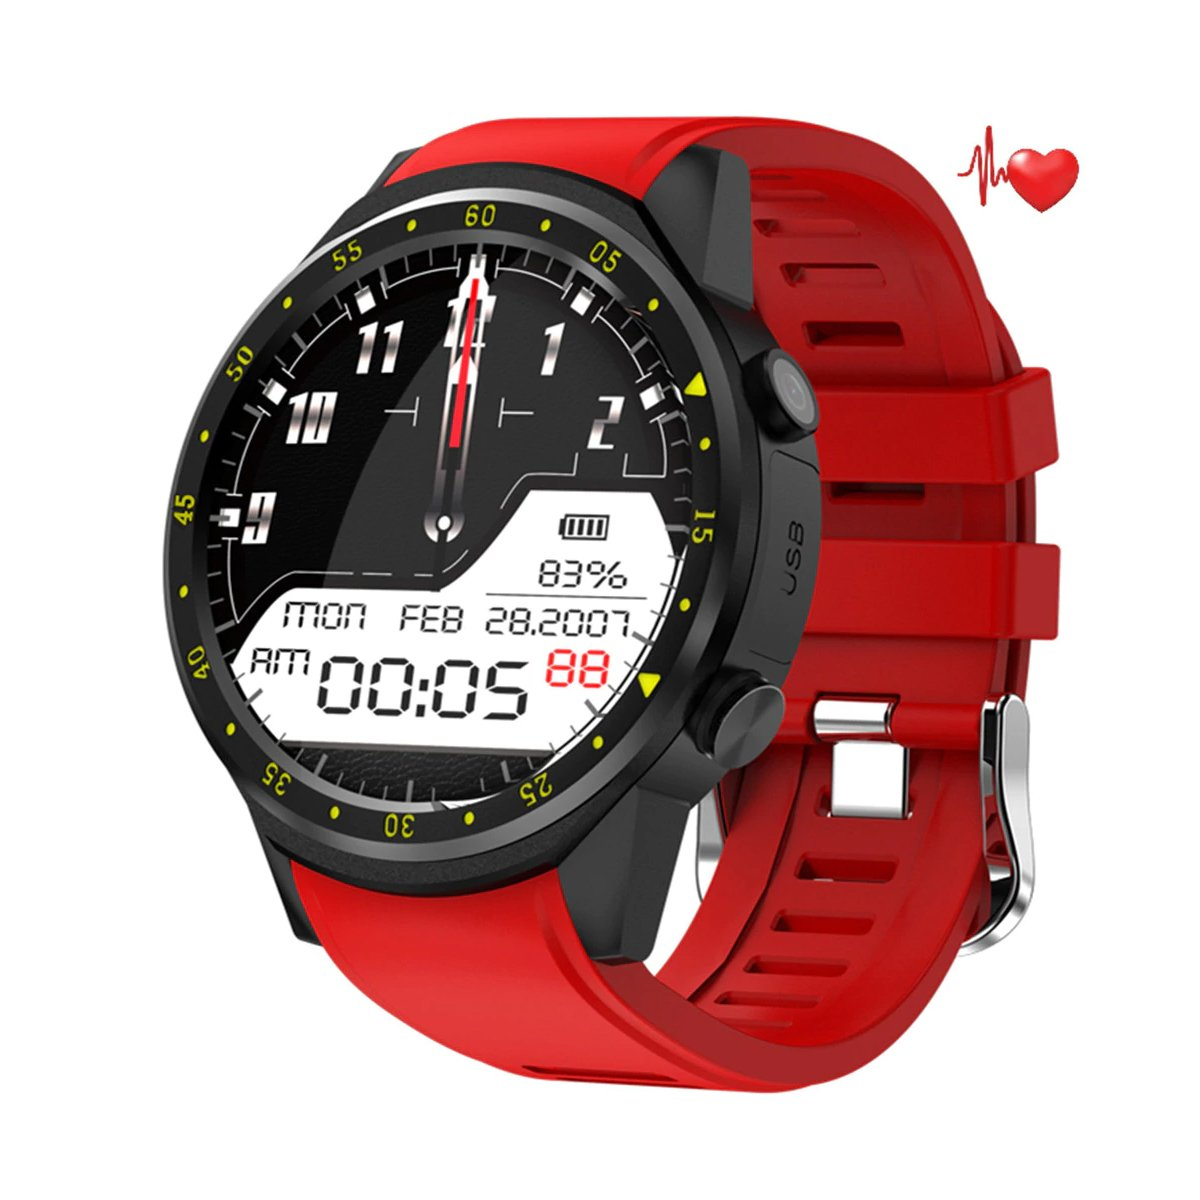 Multifunctional Smart Watch with HD Camera, Stopwatch, Pedometer & GPS